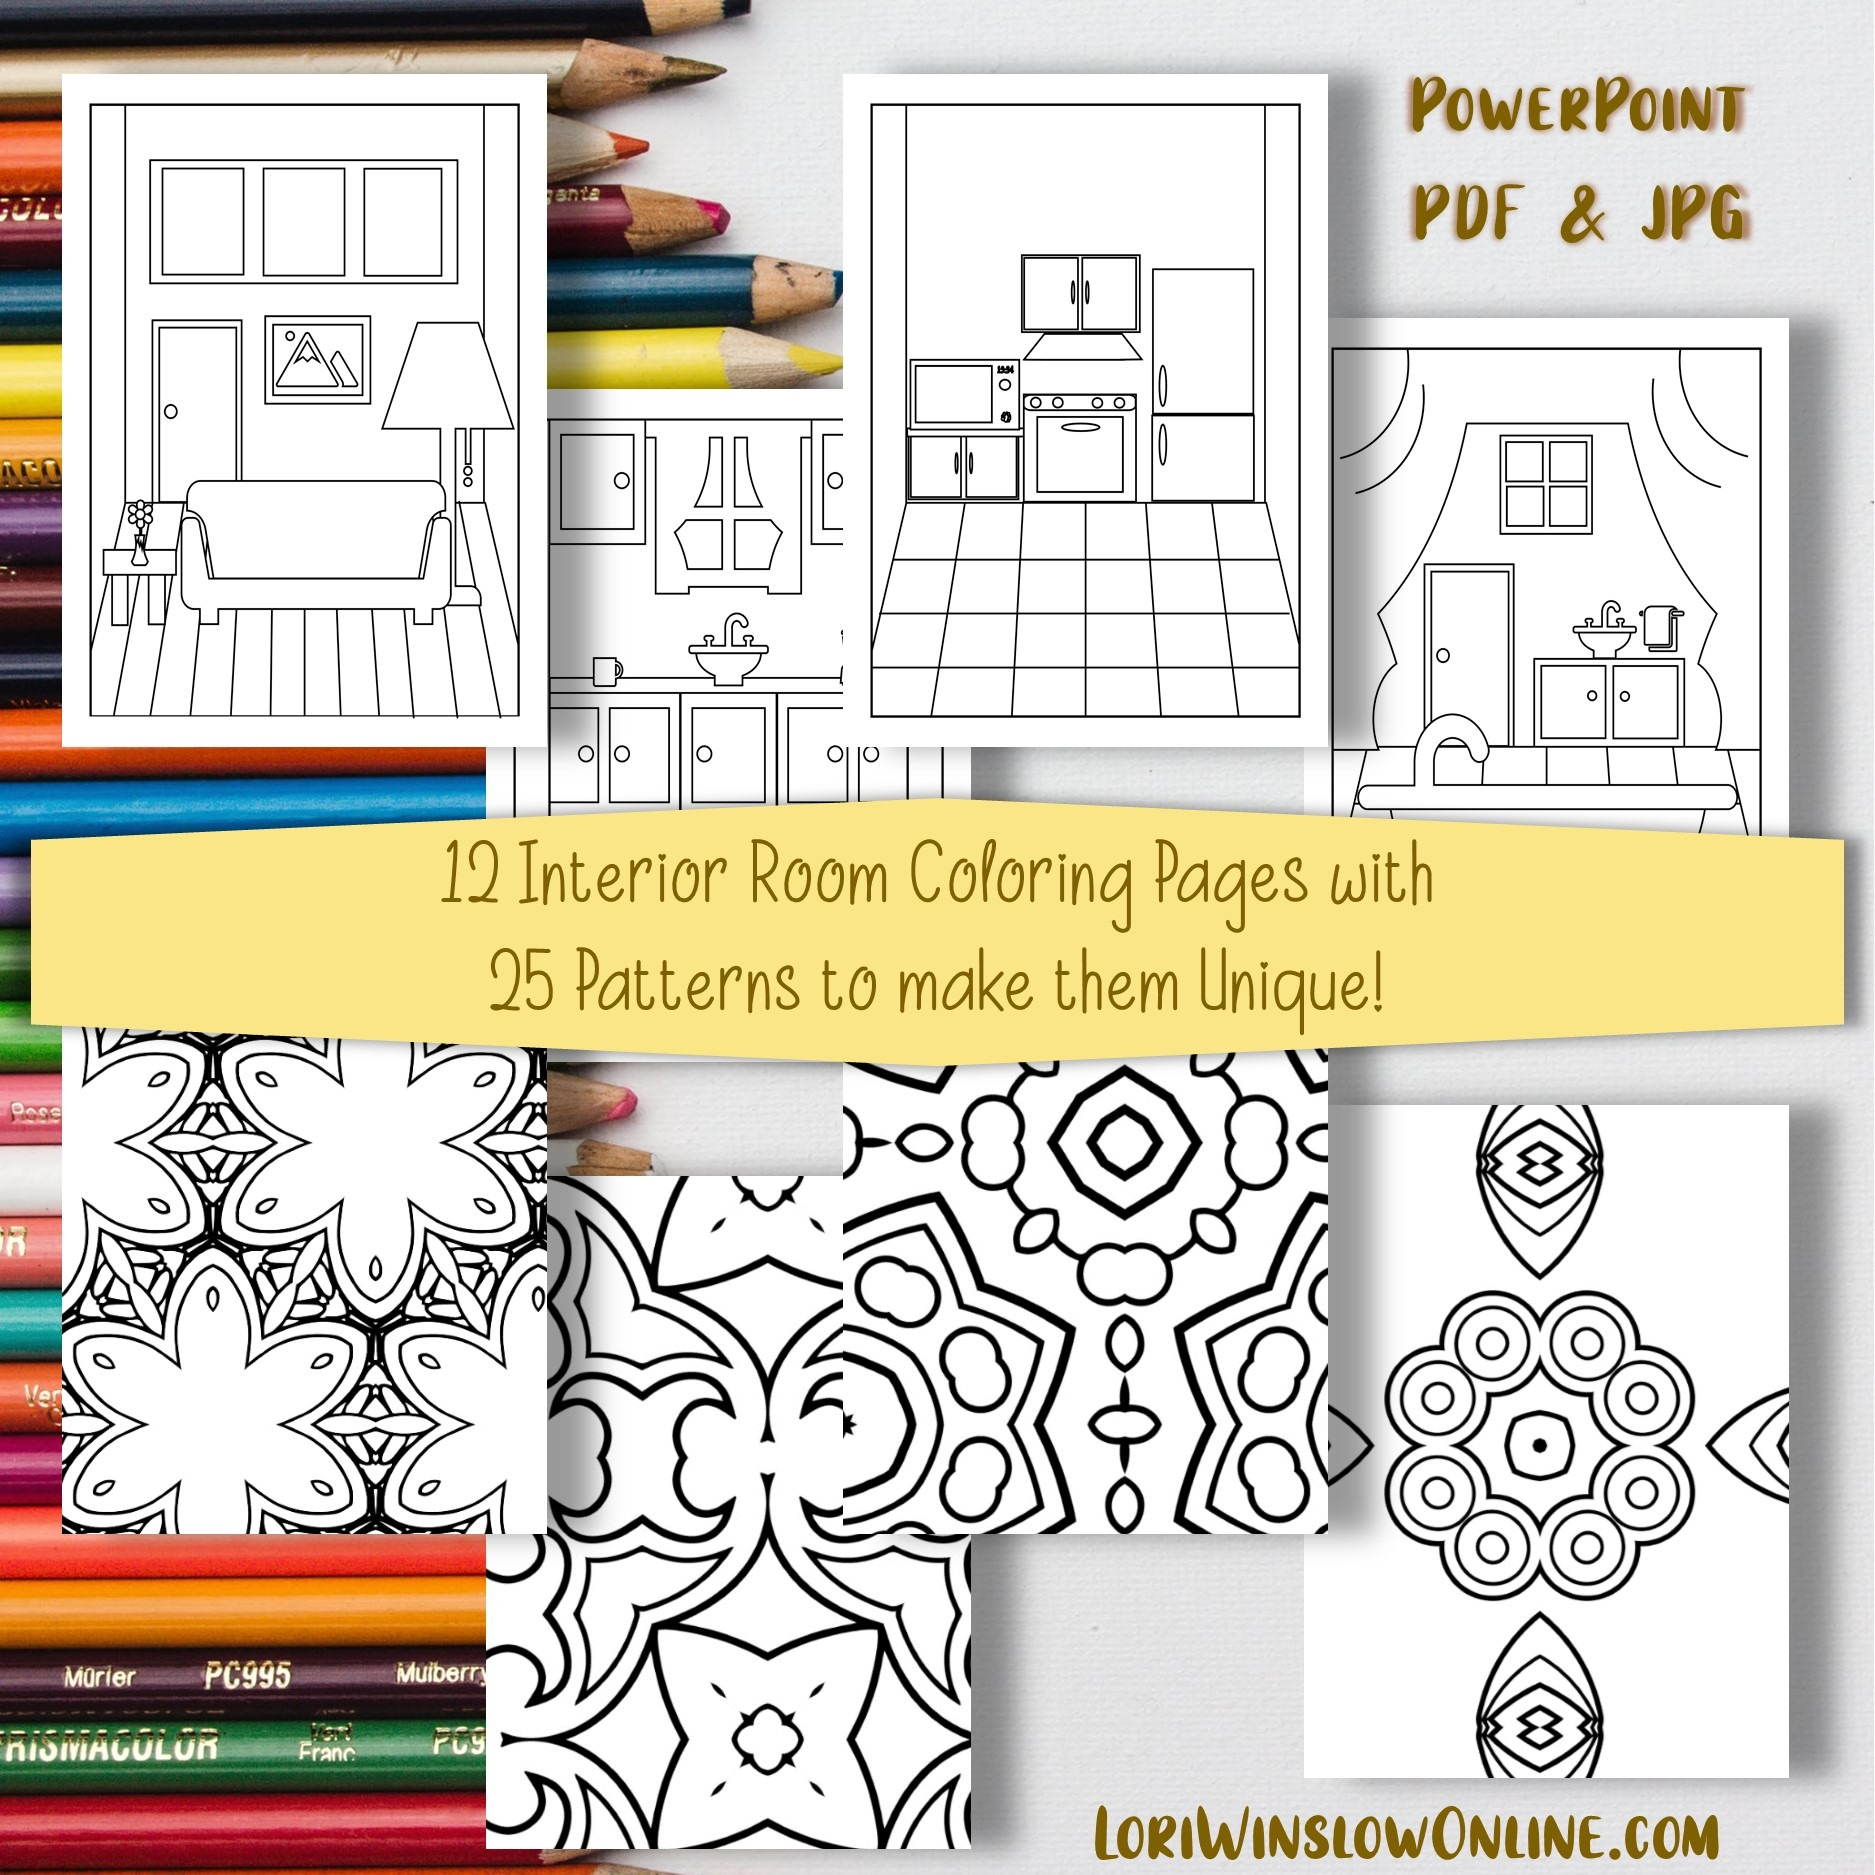 600x600-Product-Mockup-Coloring-Rooms